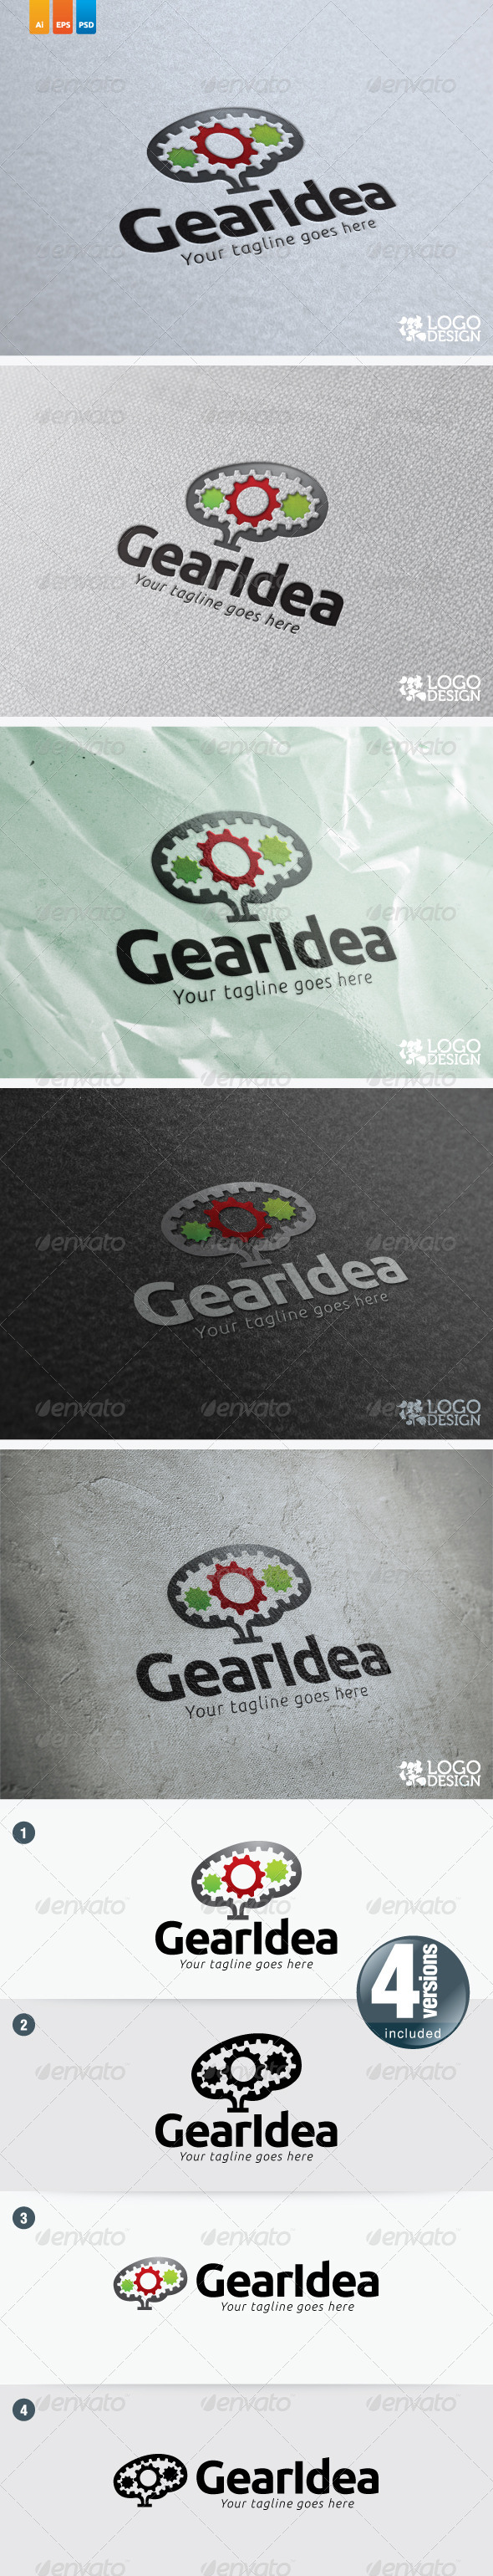 GearIdea - Objects Logo Templates